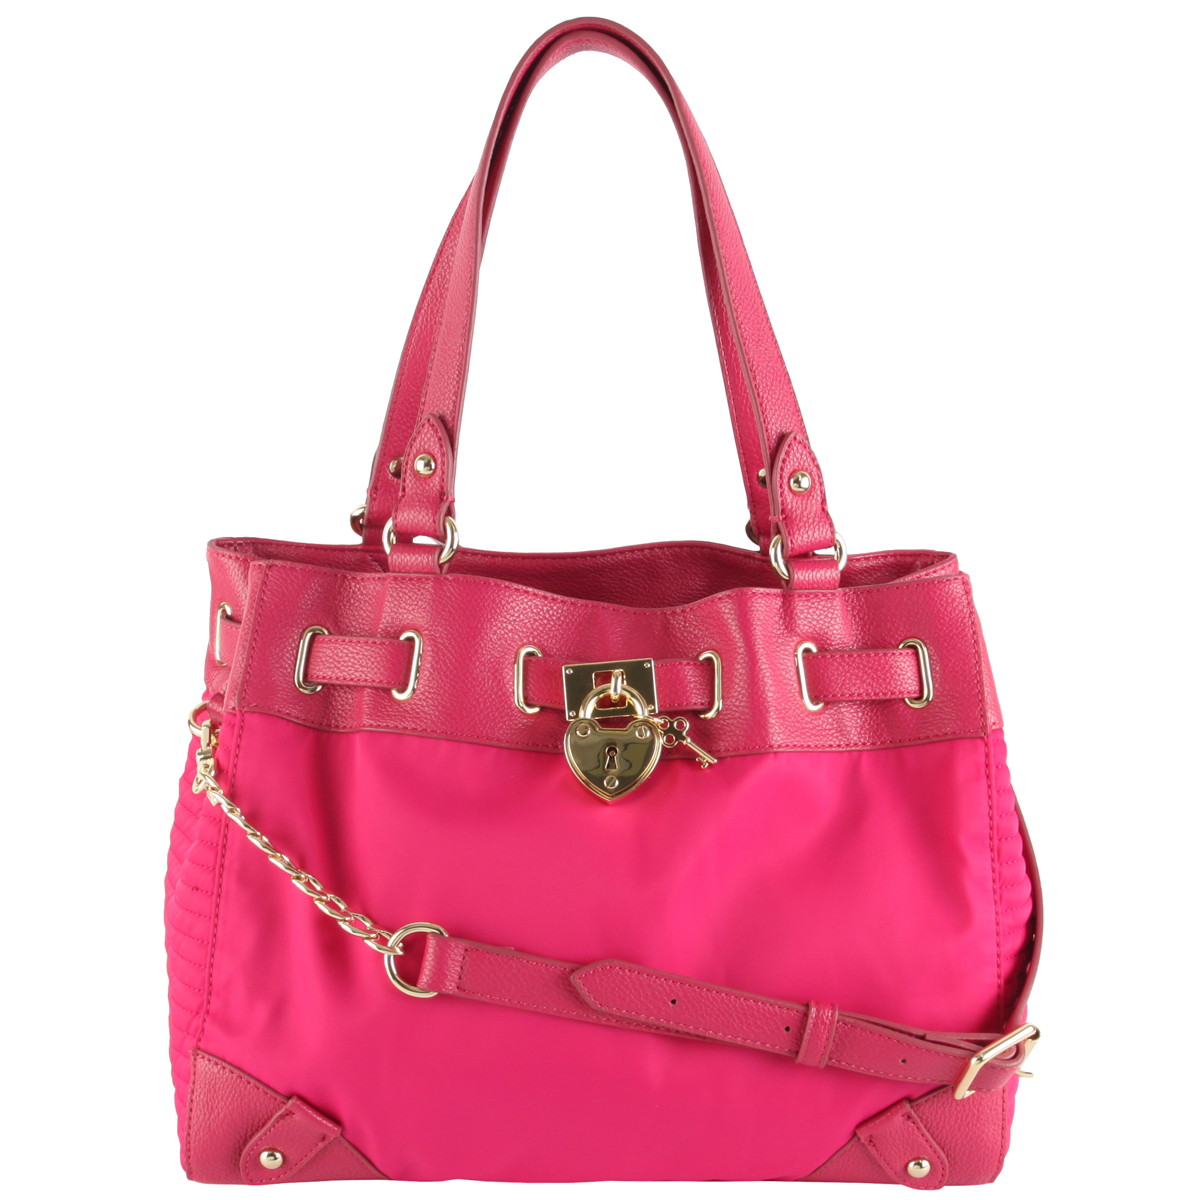 Juicy Couture Nylon Daydreamer Bag-Pink